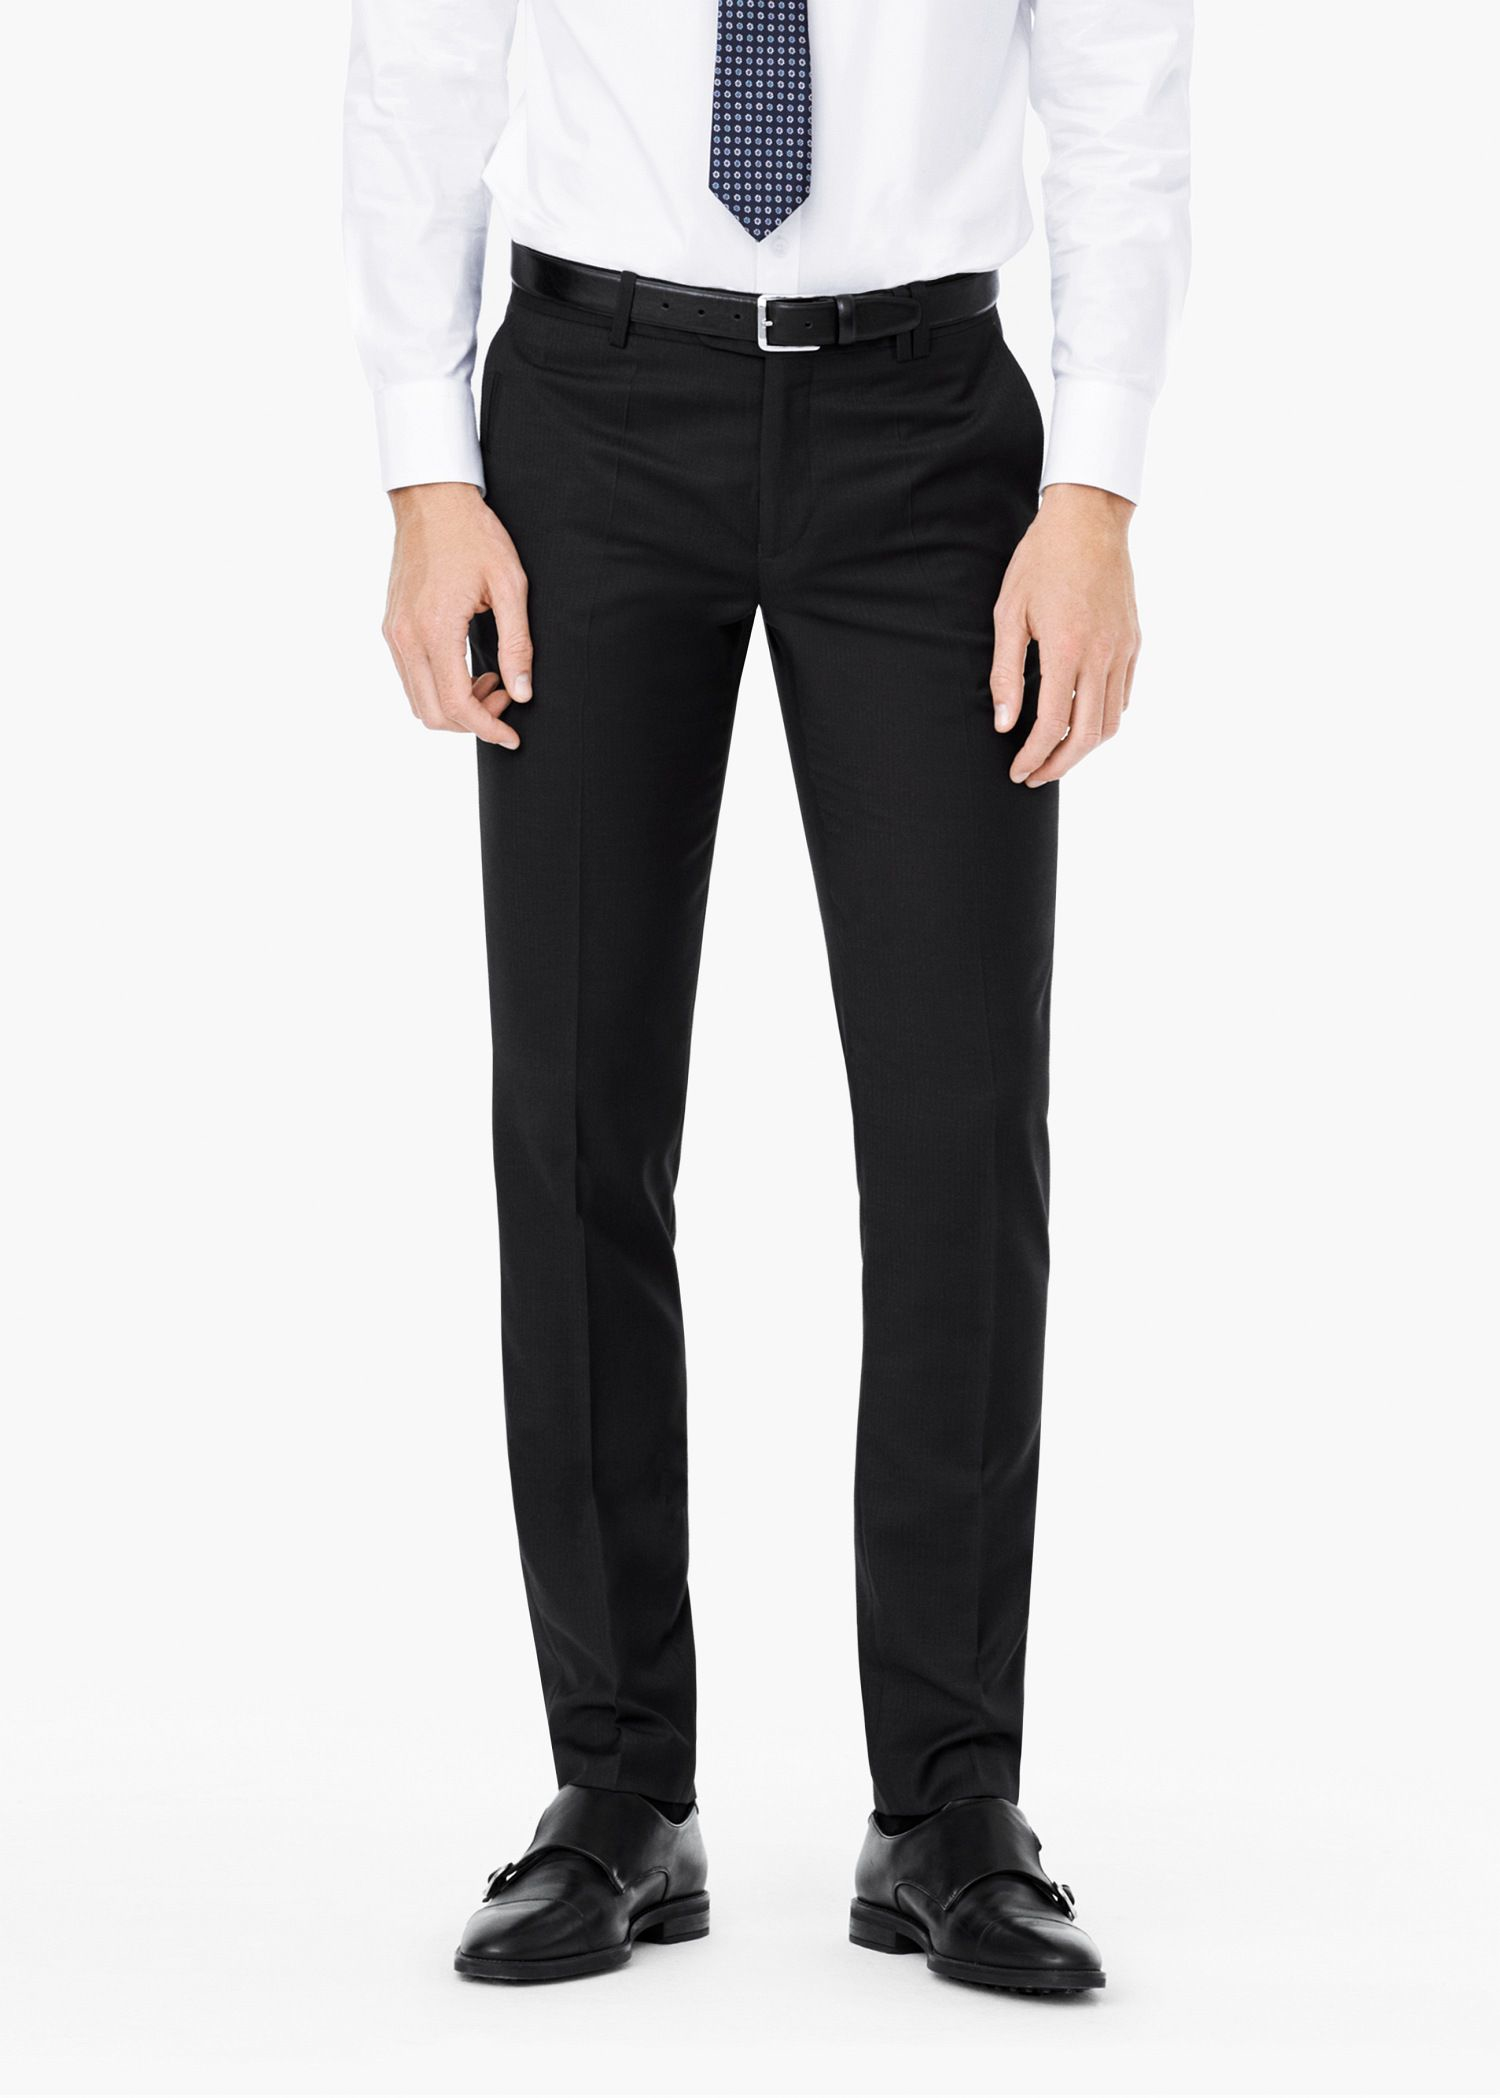 Mango Striped Suit Trousers in Charcoal (Grey) for Men